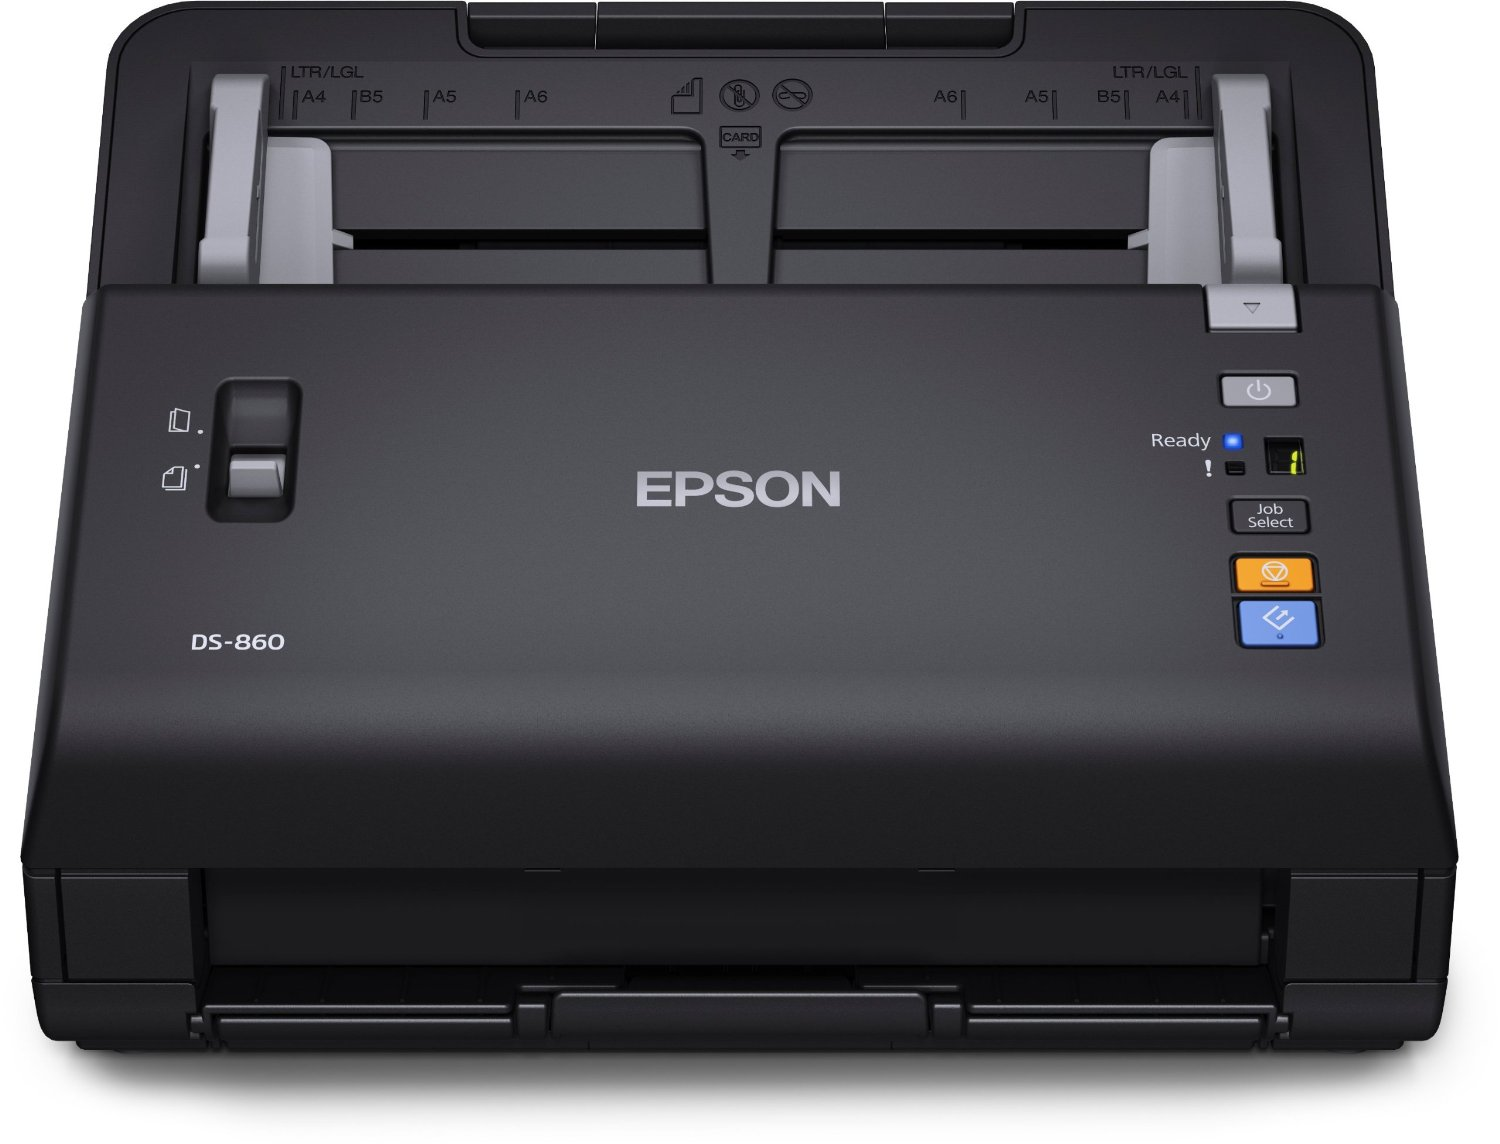 Epson WorkForce DS-860 Wireless Color Document Scanner, 65ppm/130ipm (at 30dpi), 600dpi Optical/75-1200 dpi Output, 80 Sheets ADF, USB 2.0